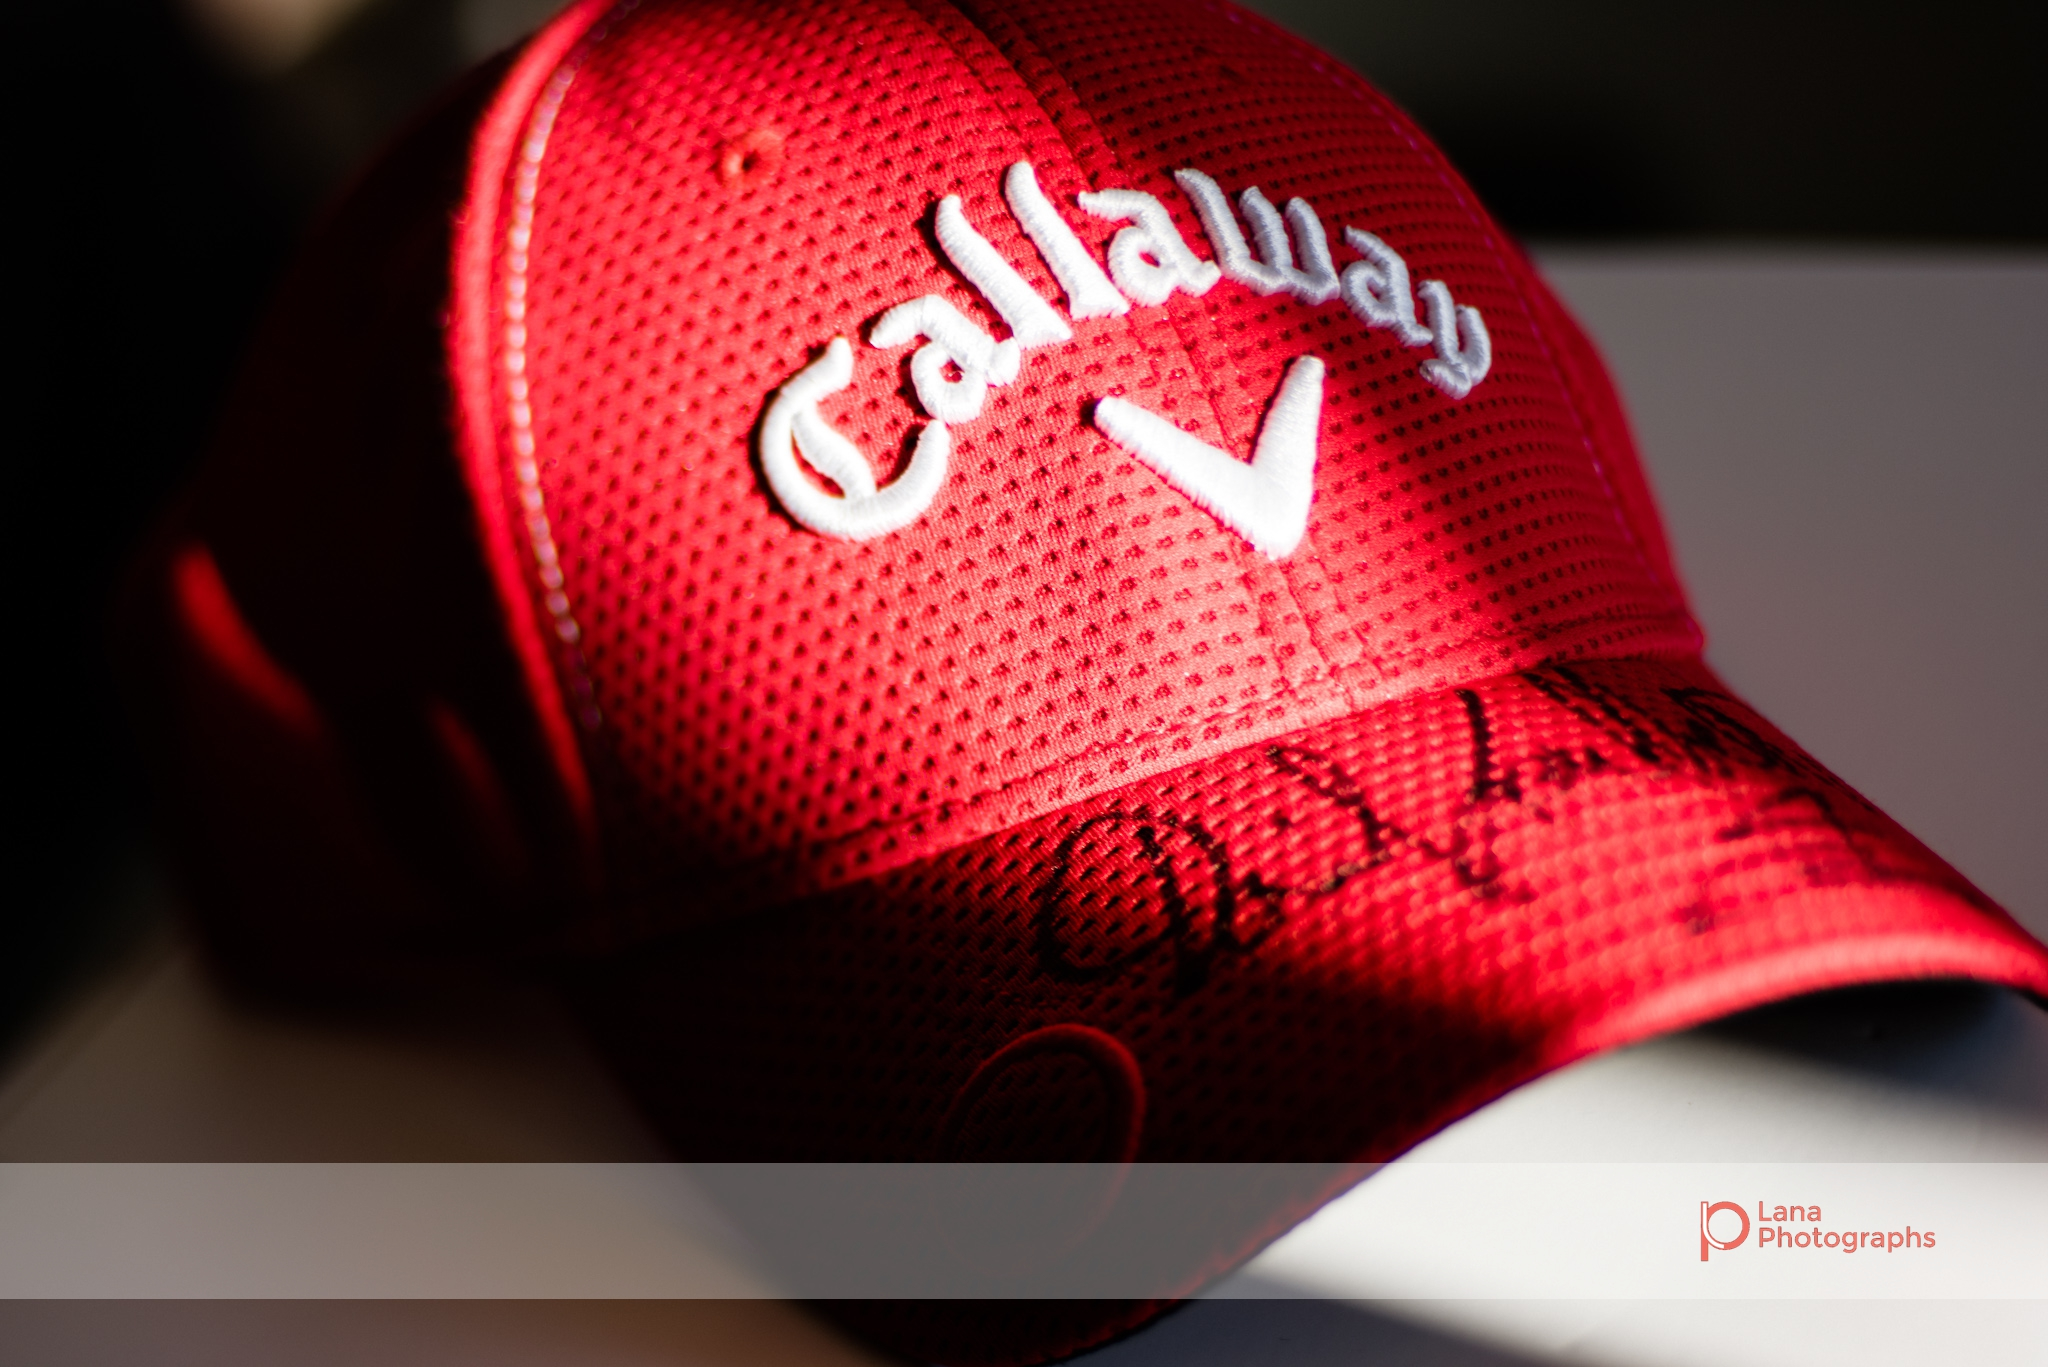 A callaway cap signed by David Leadbetter in Dubai January 2017